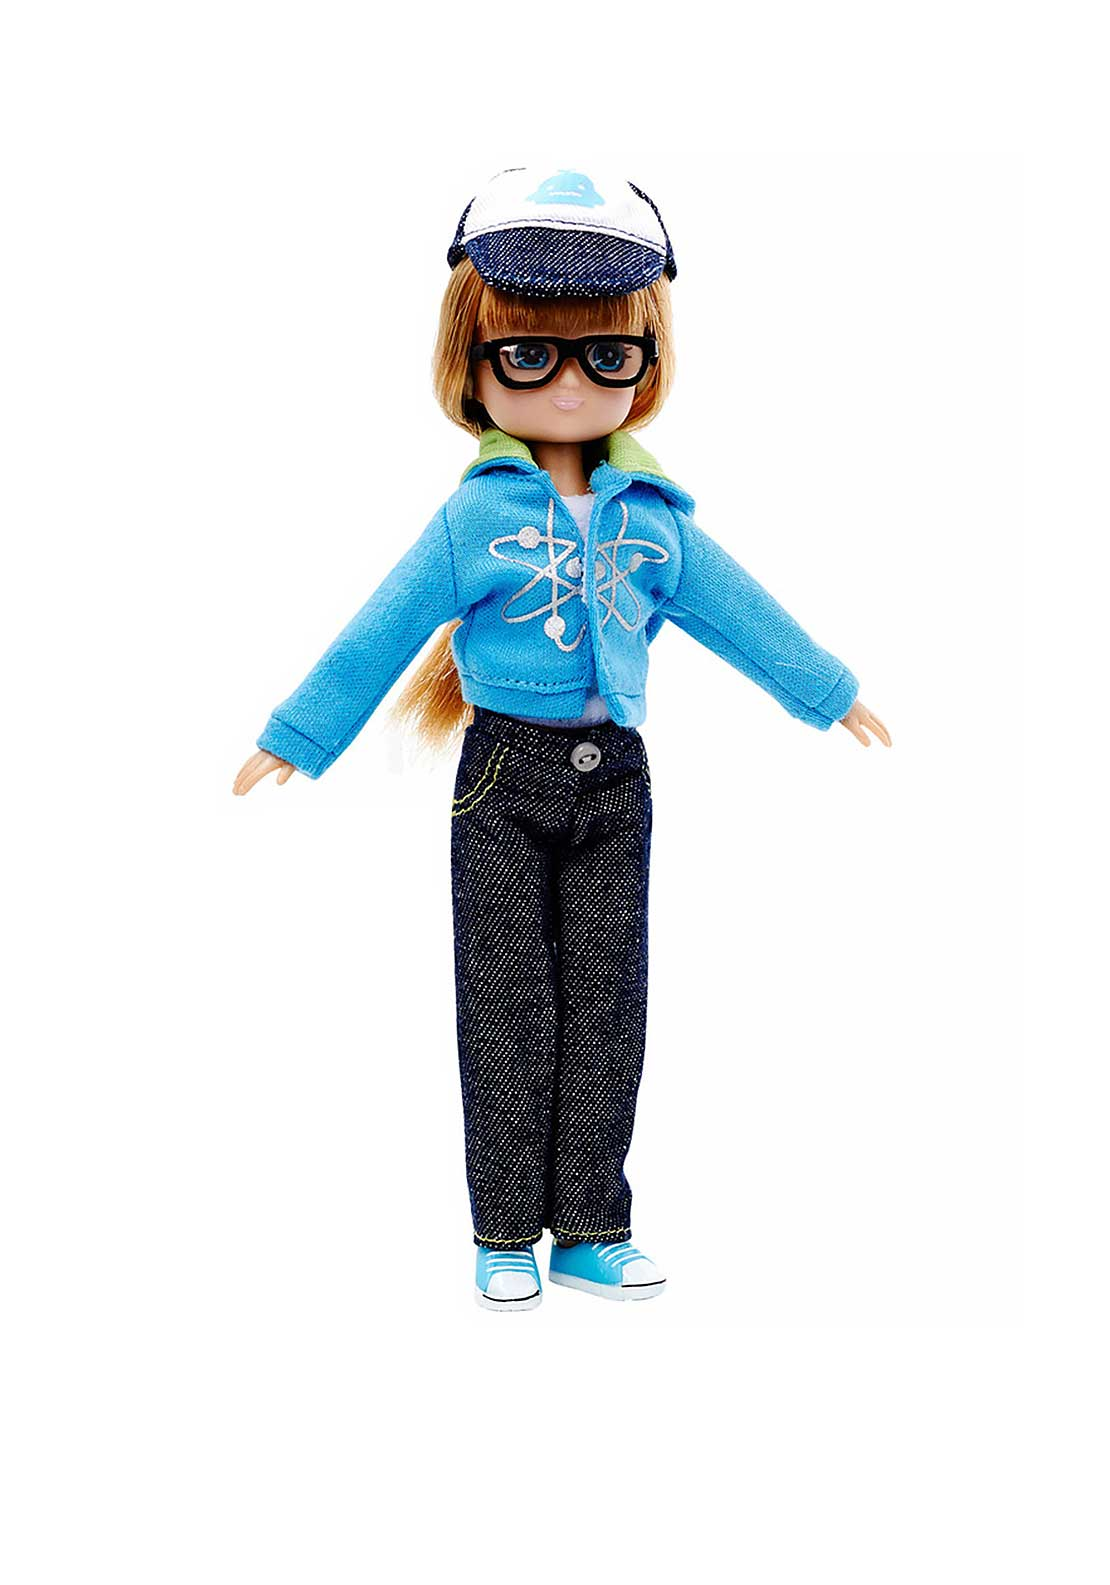 Lottie Dolls Robot Girl